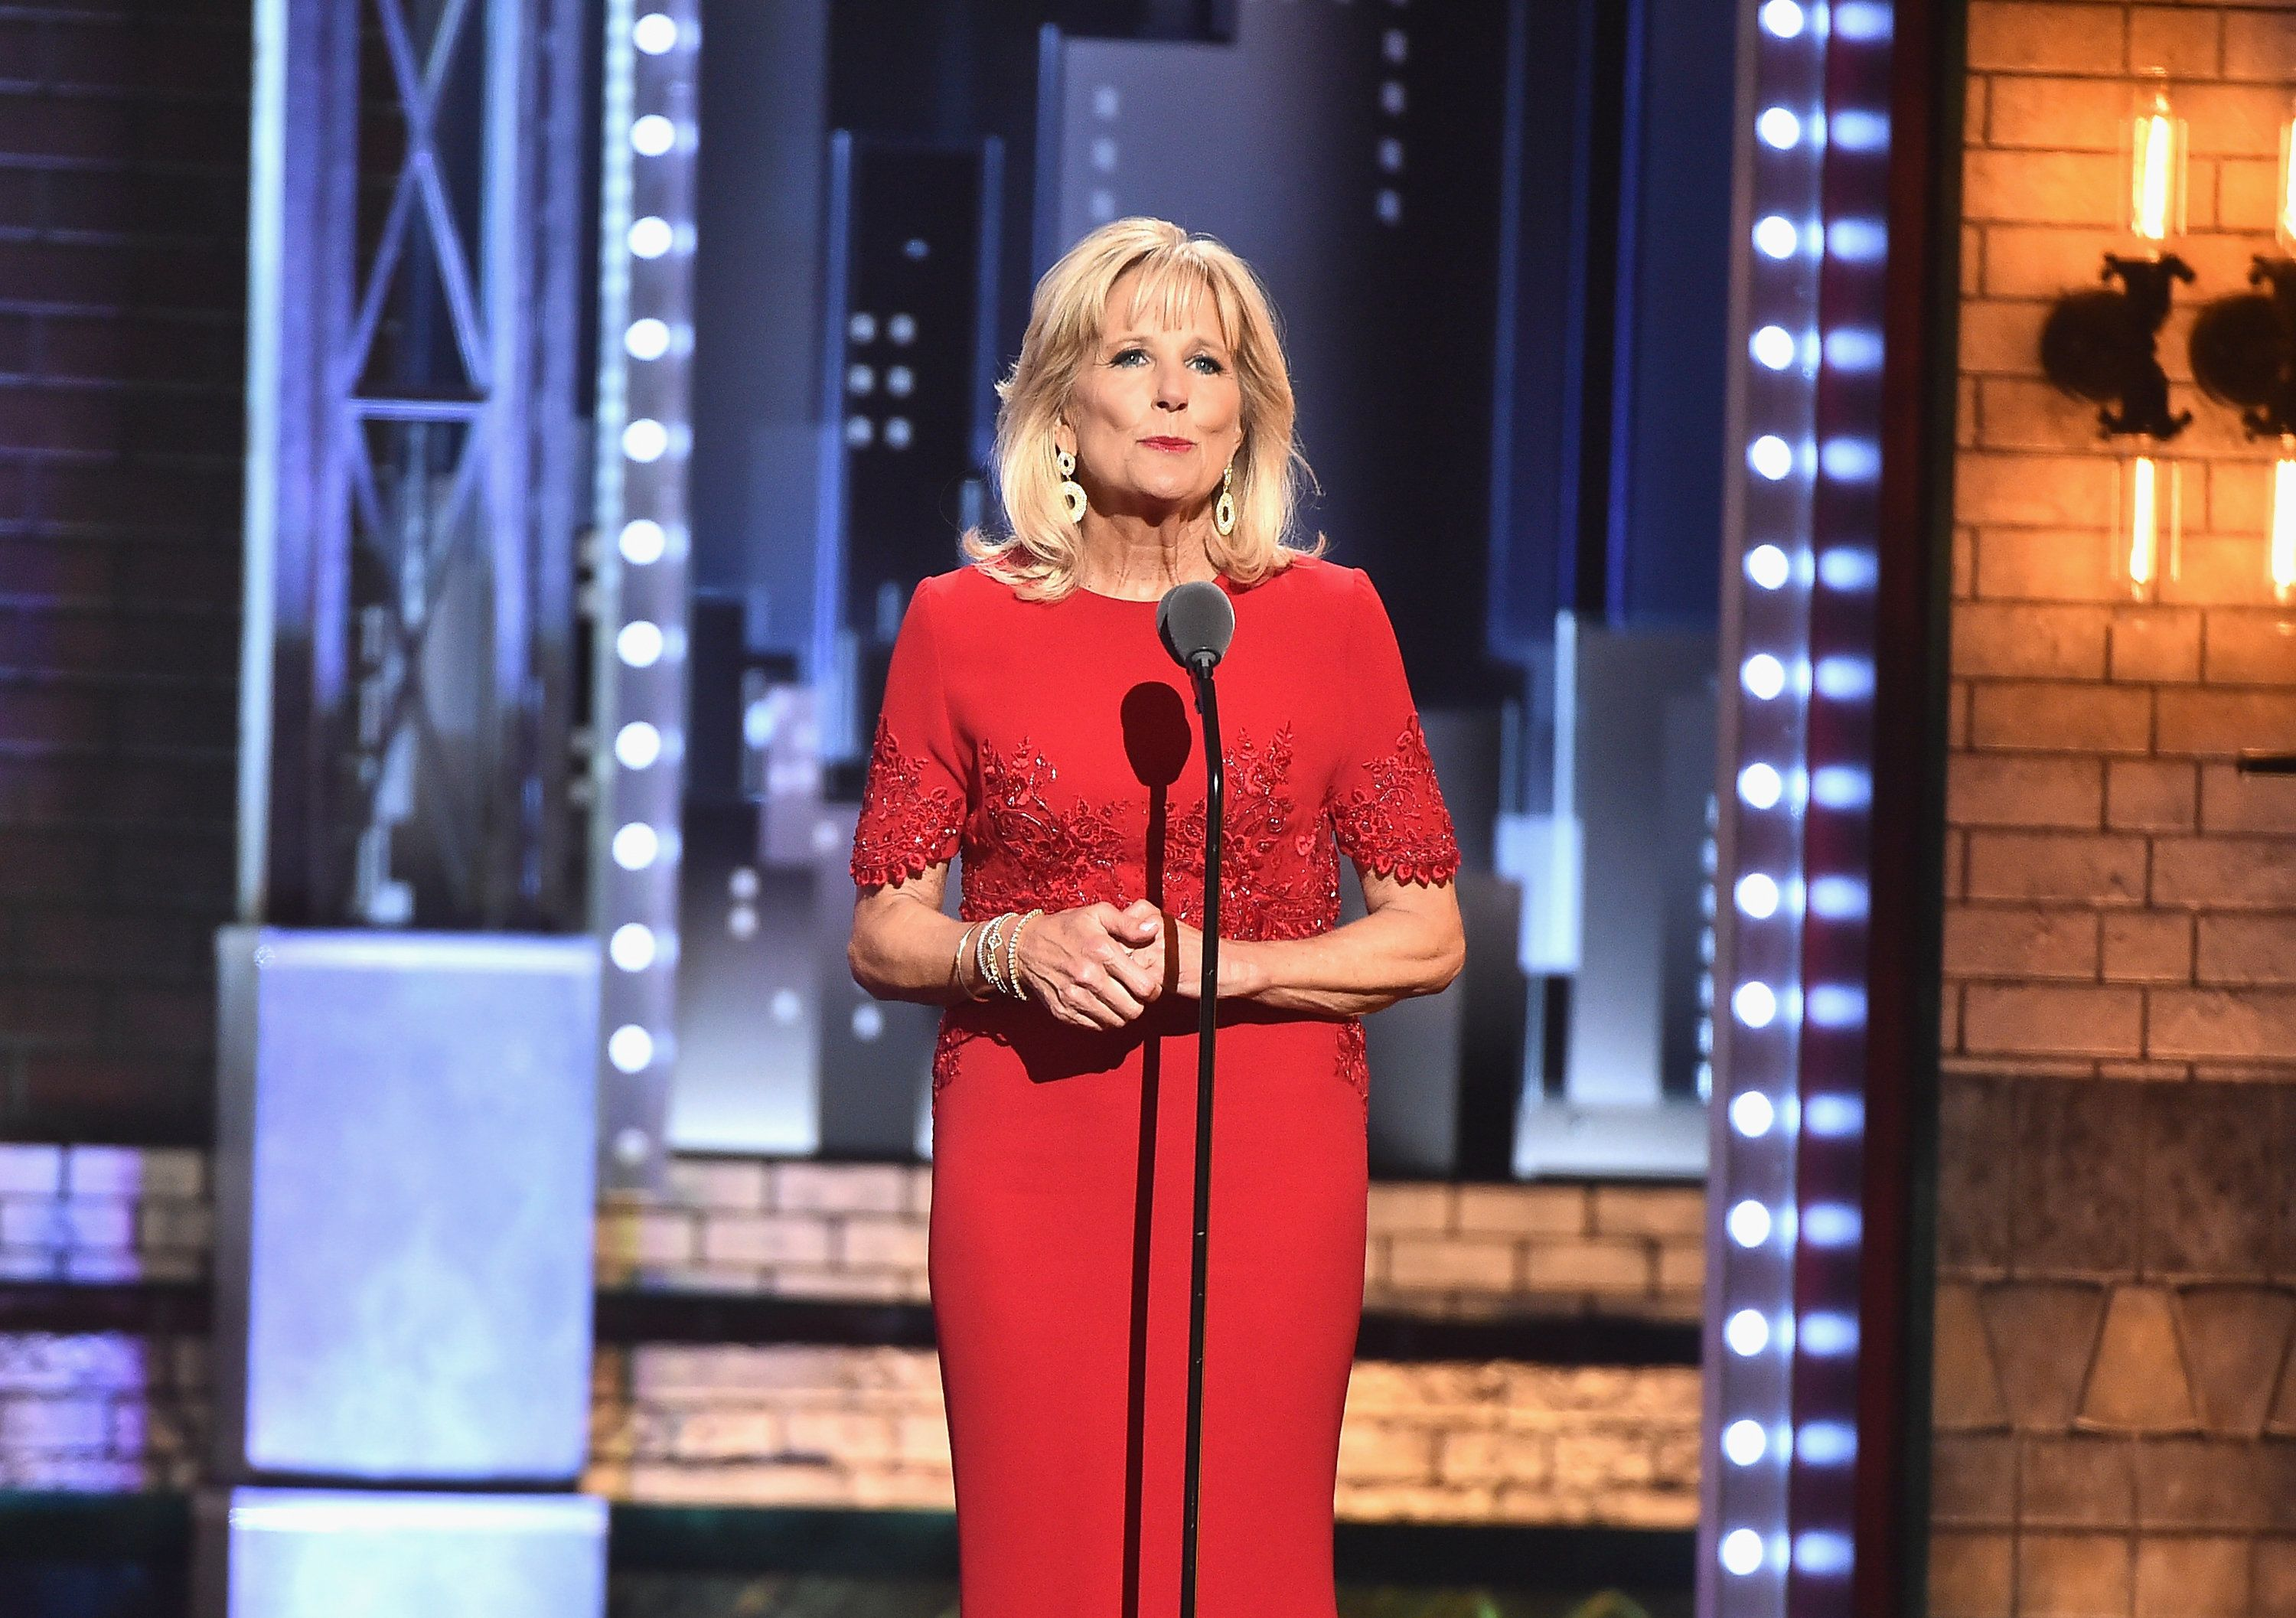 NEW YORK, NY - JUNE 11:  Jill Biden speaks onstage during the 2017 Tony Awards at Radio City Music Hall on June 11, 2017 in New York City.  (Photo by Theo Wargo/Getty Images for Tony Awards Productions)